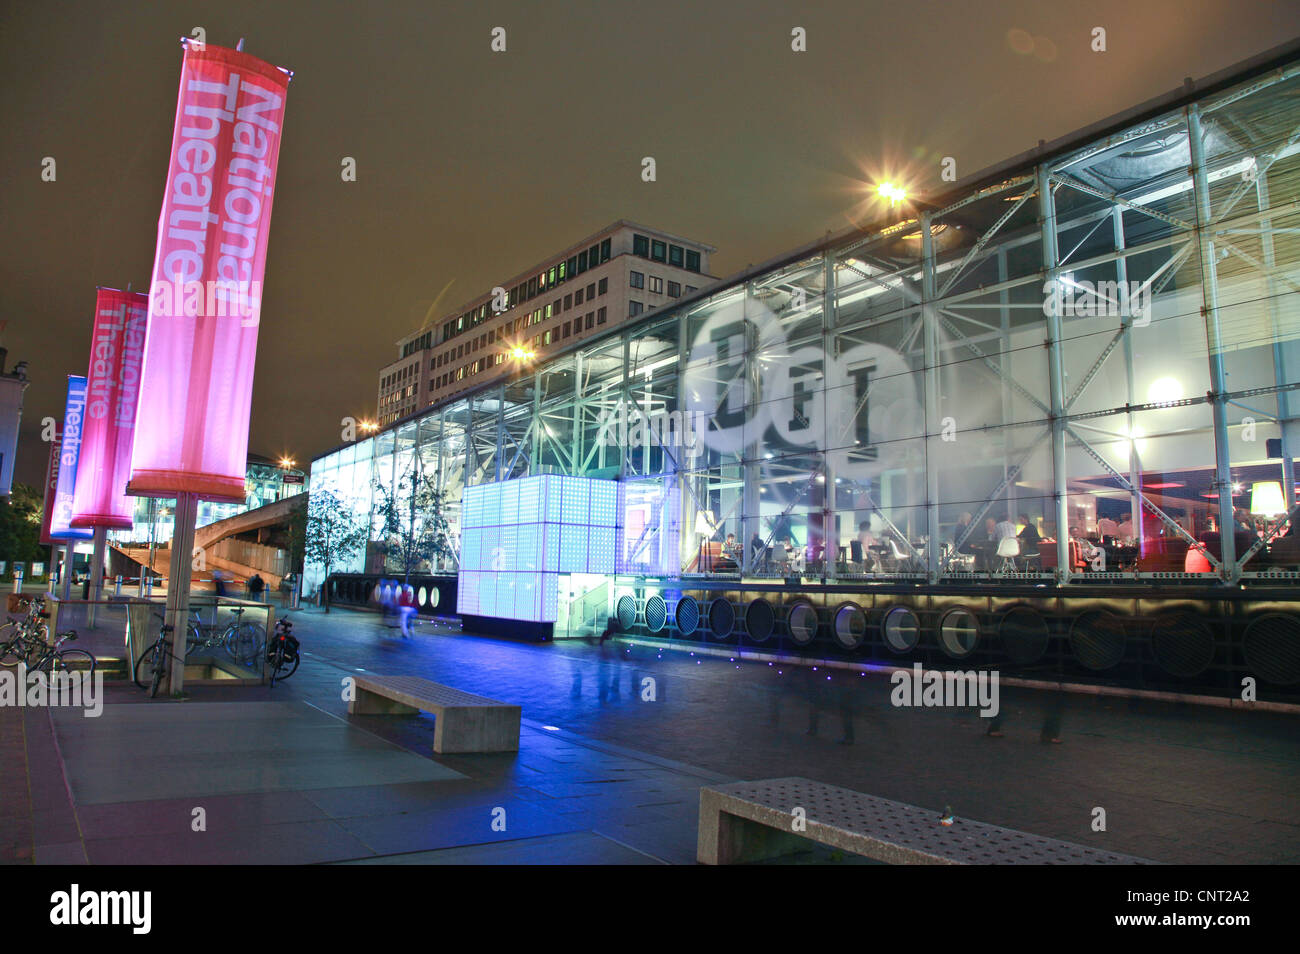 British Film Institute, Southbank, London, UK - Stock Image